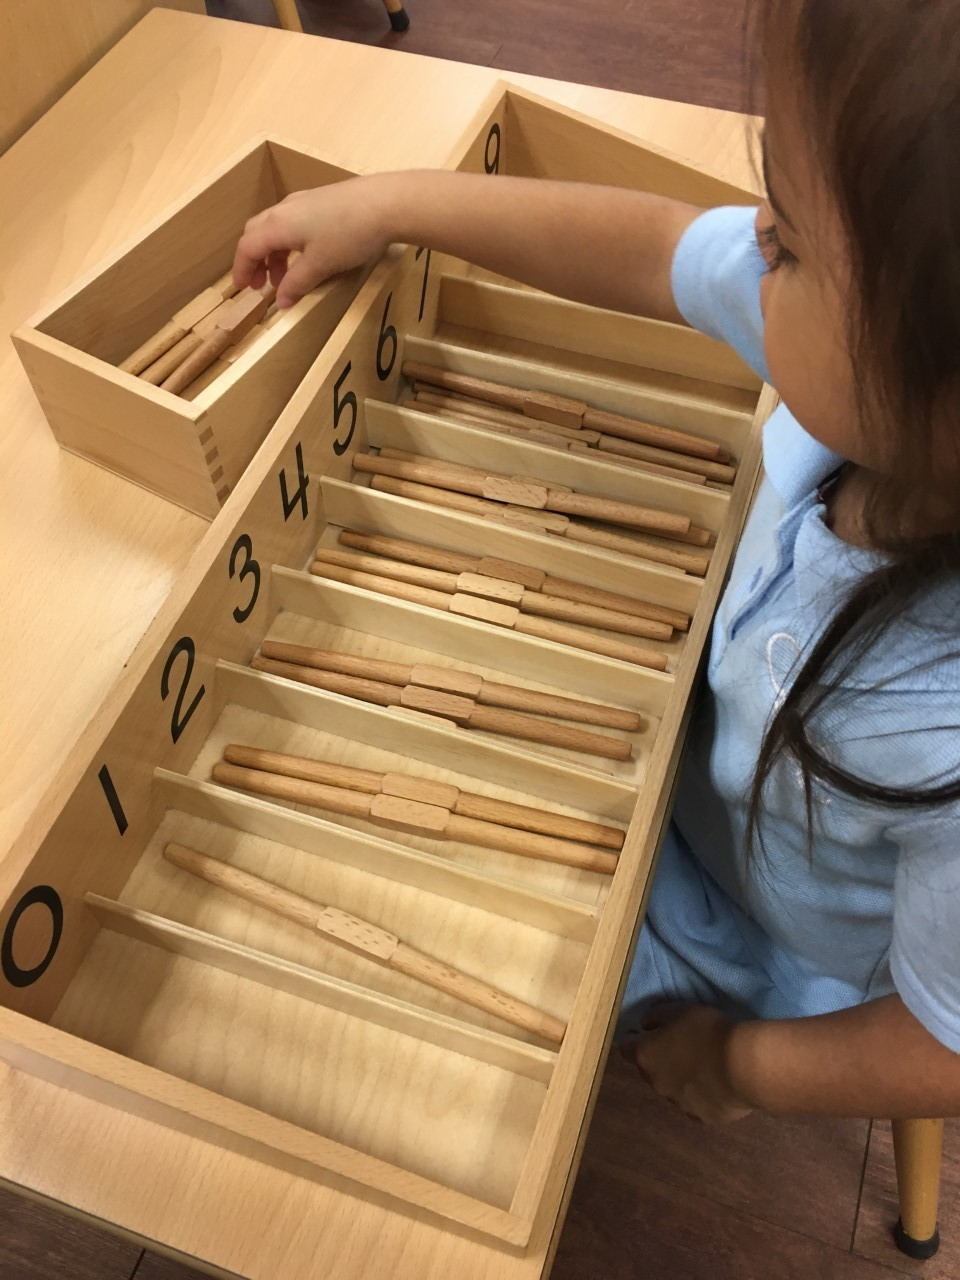 Symbols become a separate quantity with Spindle Boxes